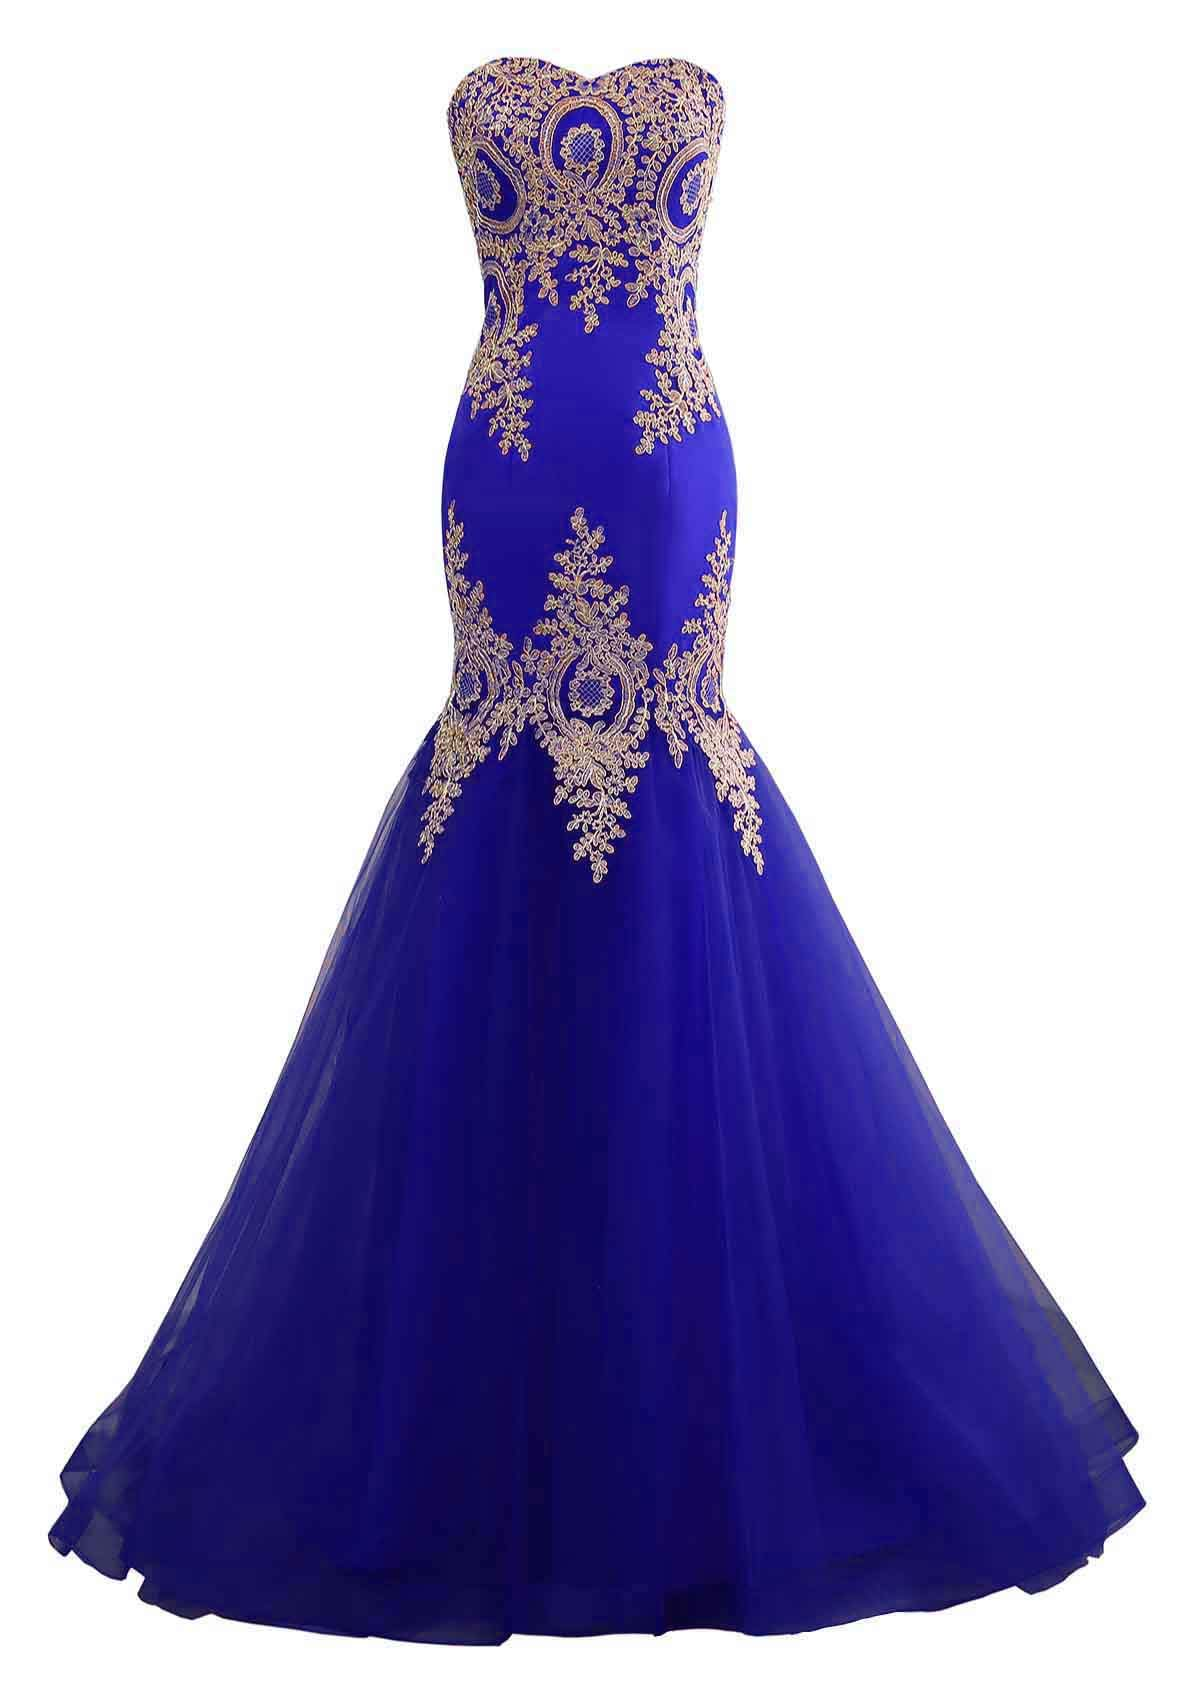 Available at Amazon: Changuan Mermaid Evening Dress for Women Backless Formal Long Prom Dresses with Embroidery